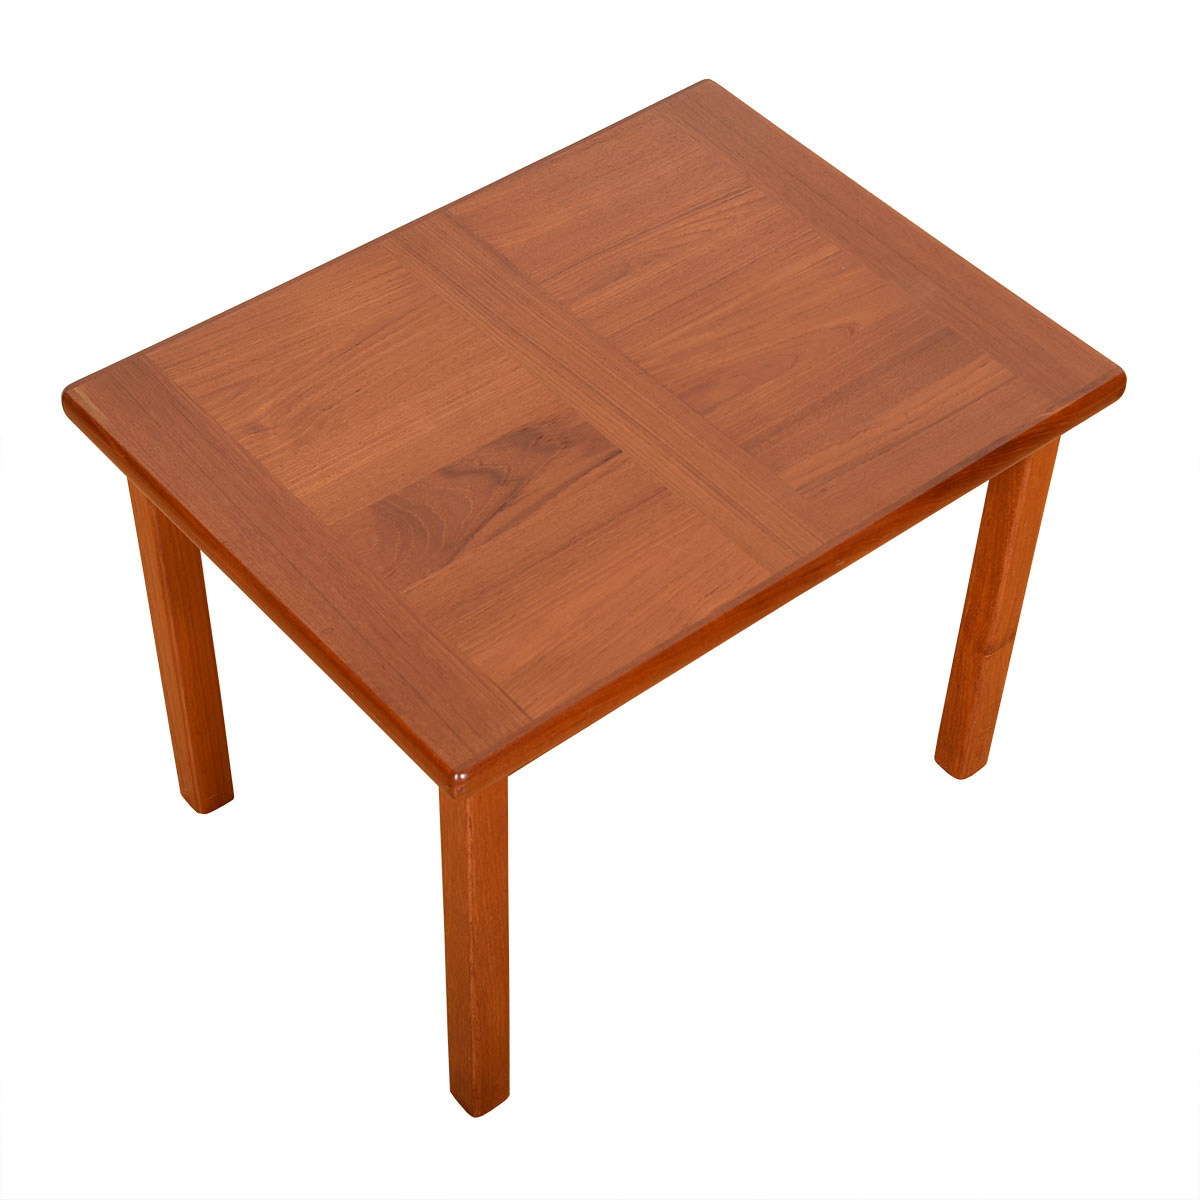 Danish Modern Teak Cross-Grained Accent / Side Table